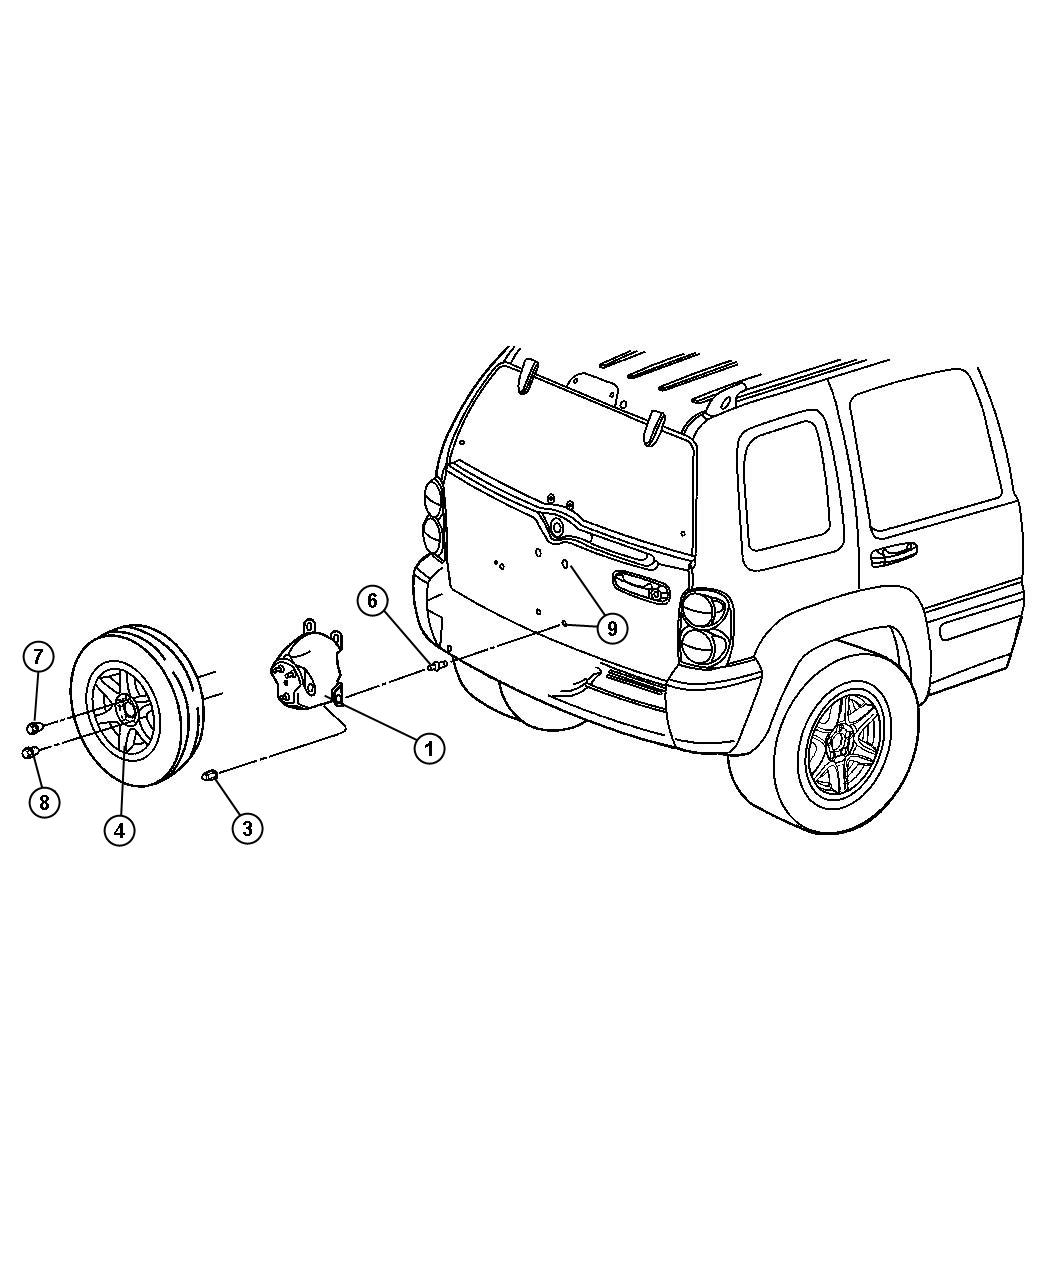 2006 Jeep Liberty Stud. [tbr], spare tire carrier